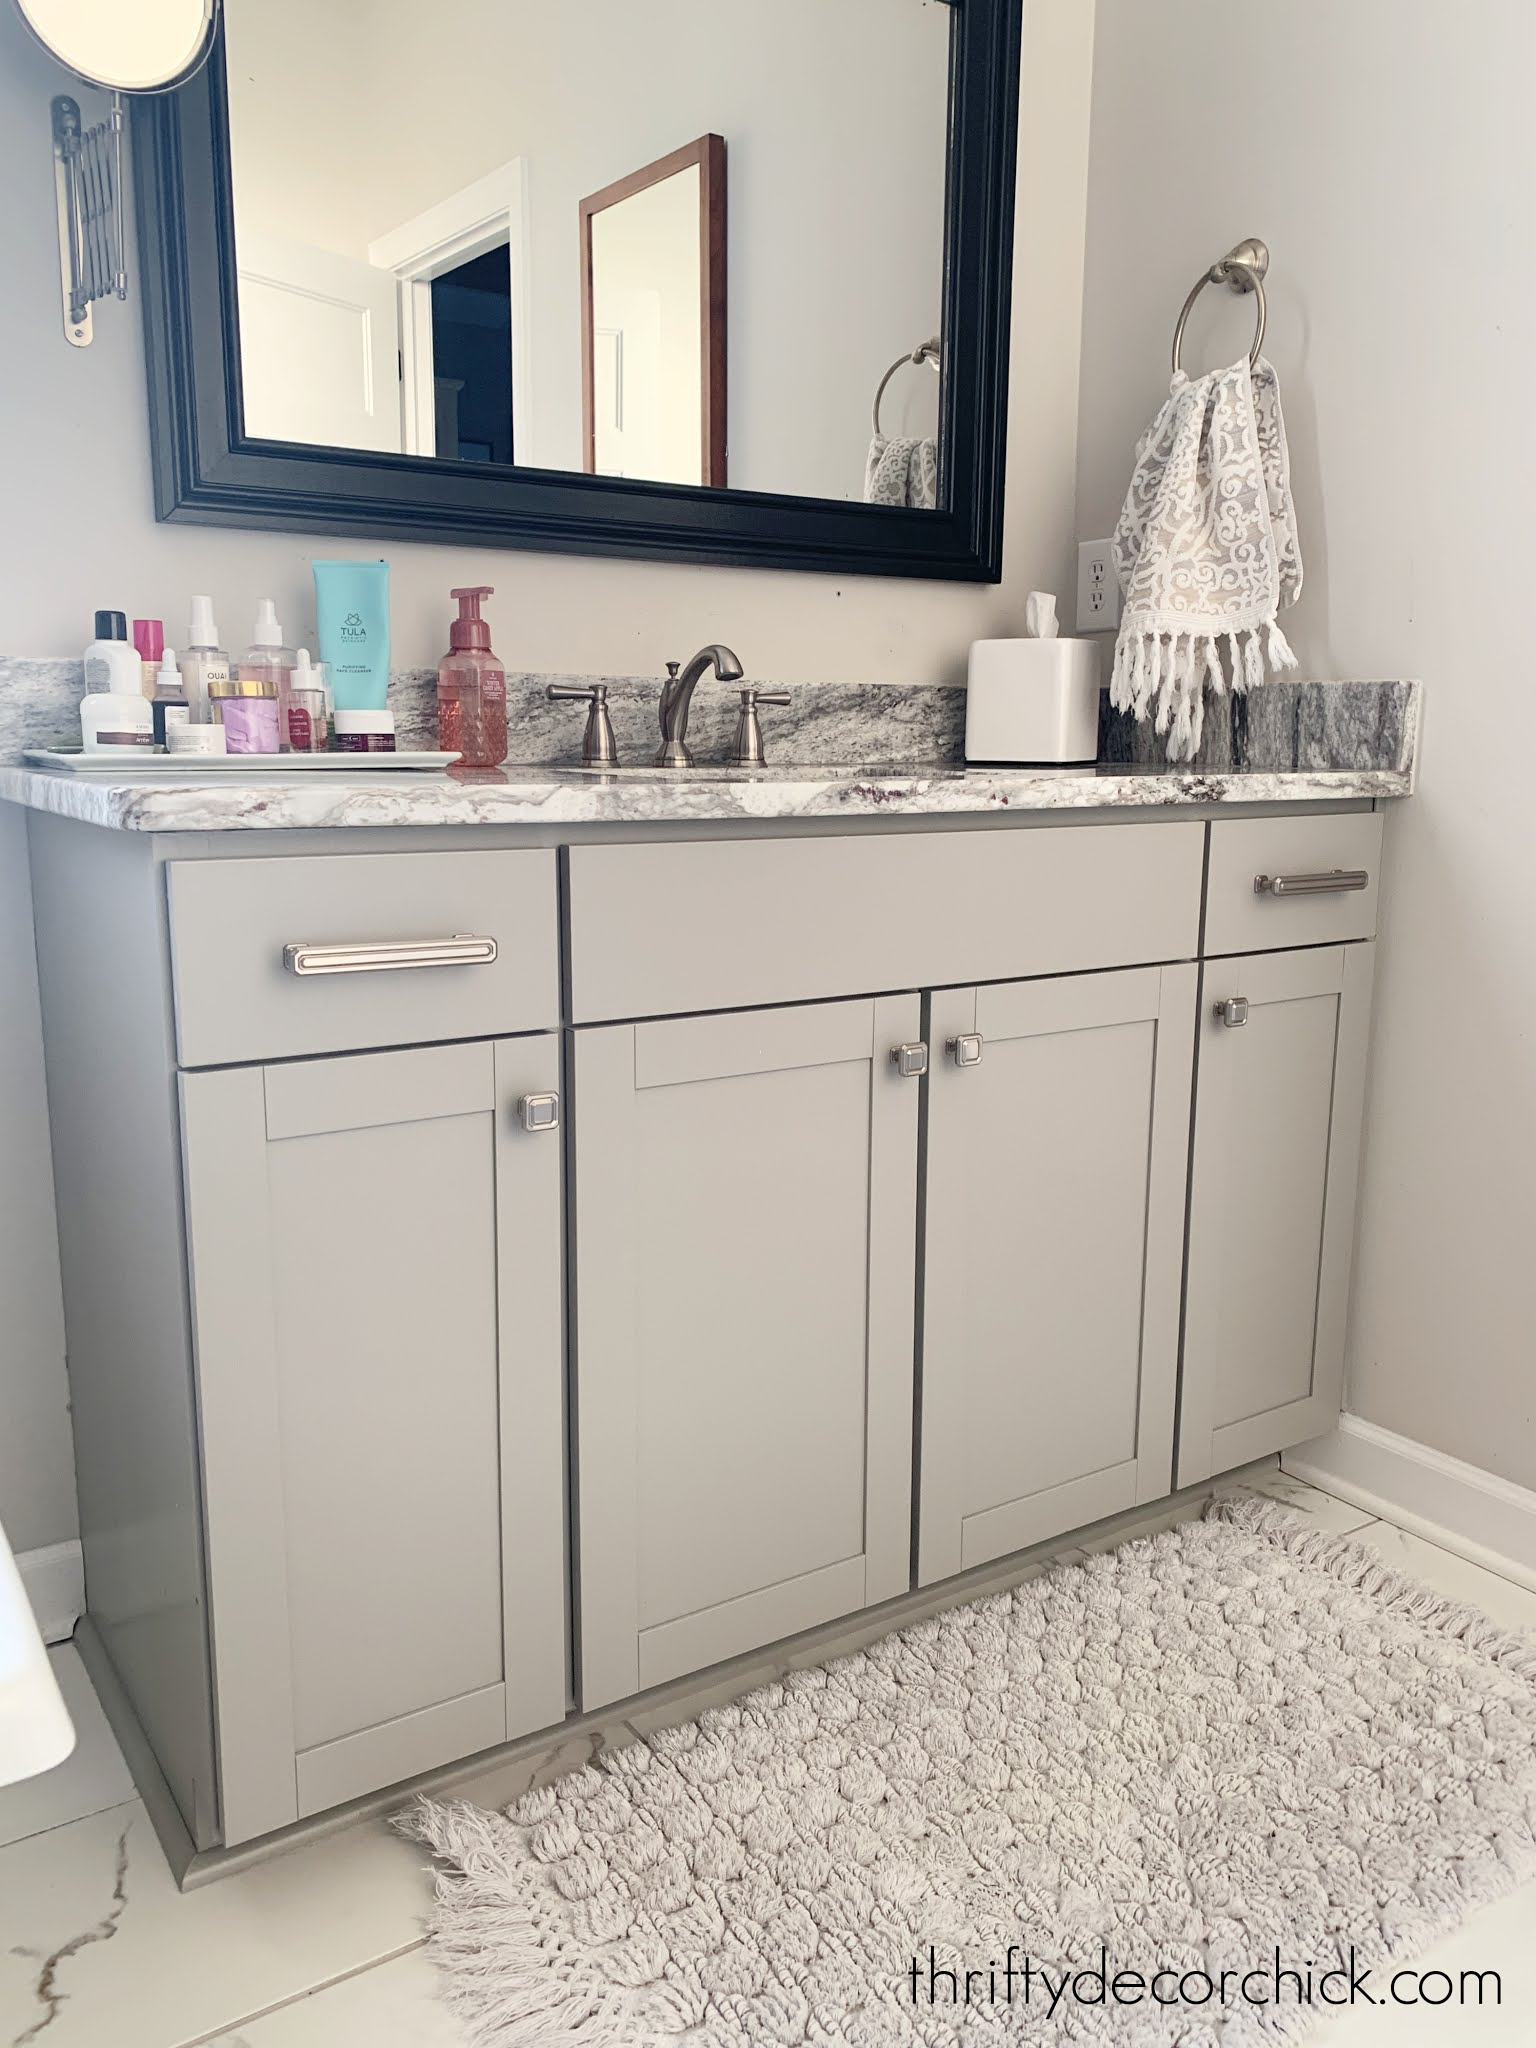 The Perfect Under The Sink Organization Solution Thrifty Decor Chick Thrifty Diy Decor And Organizing